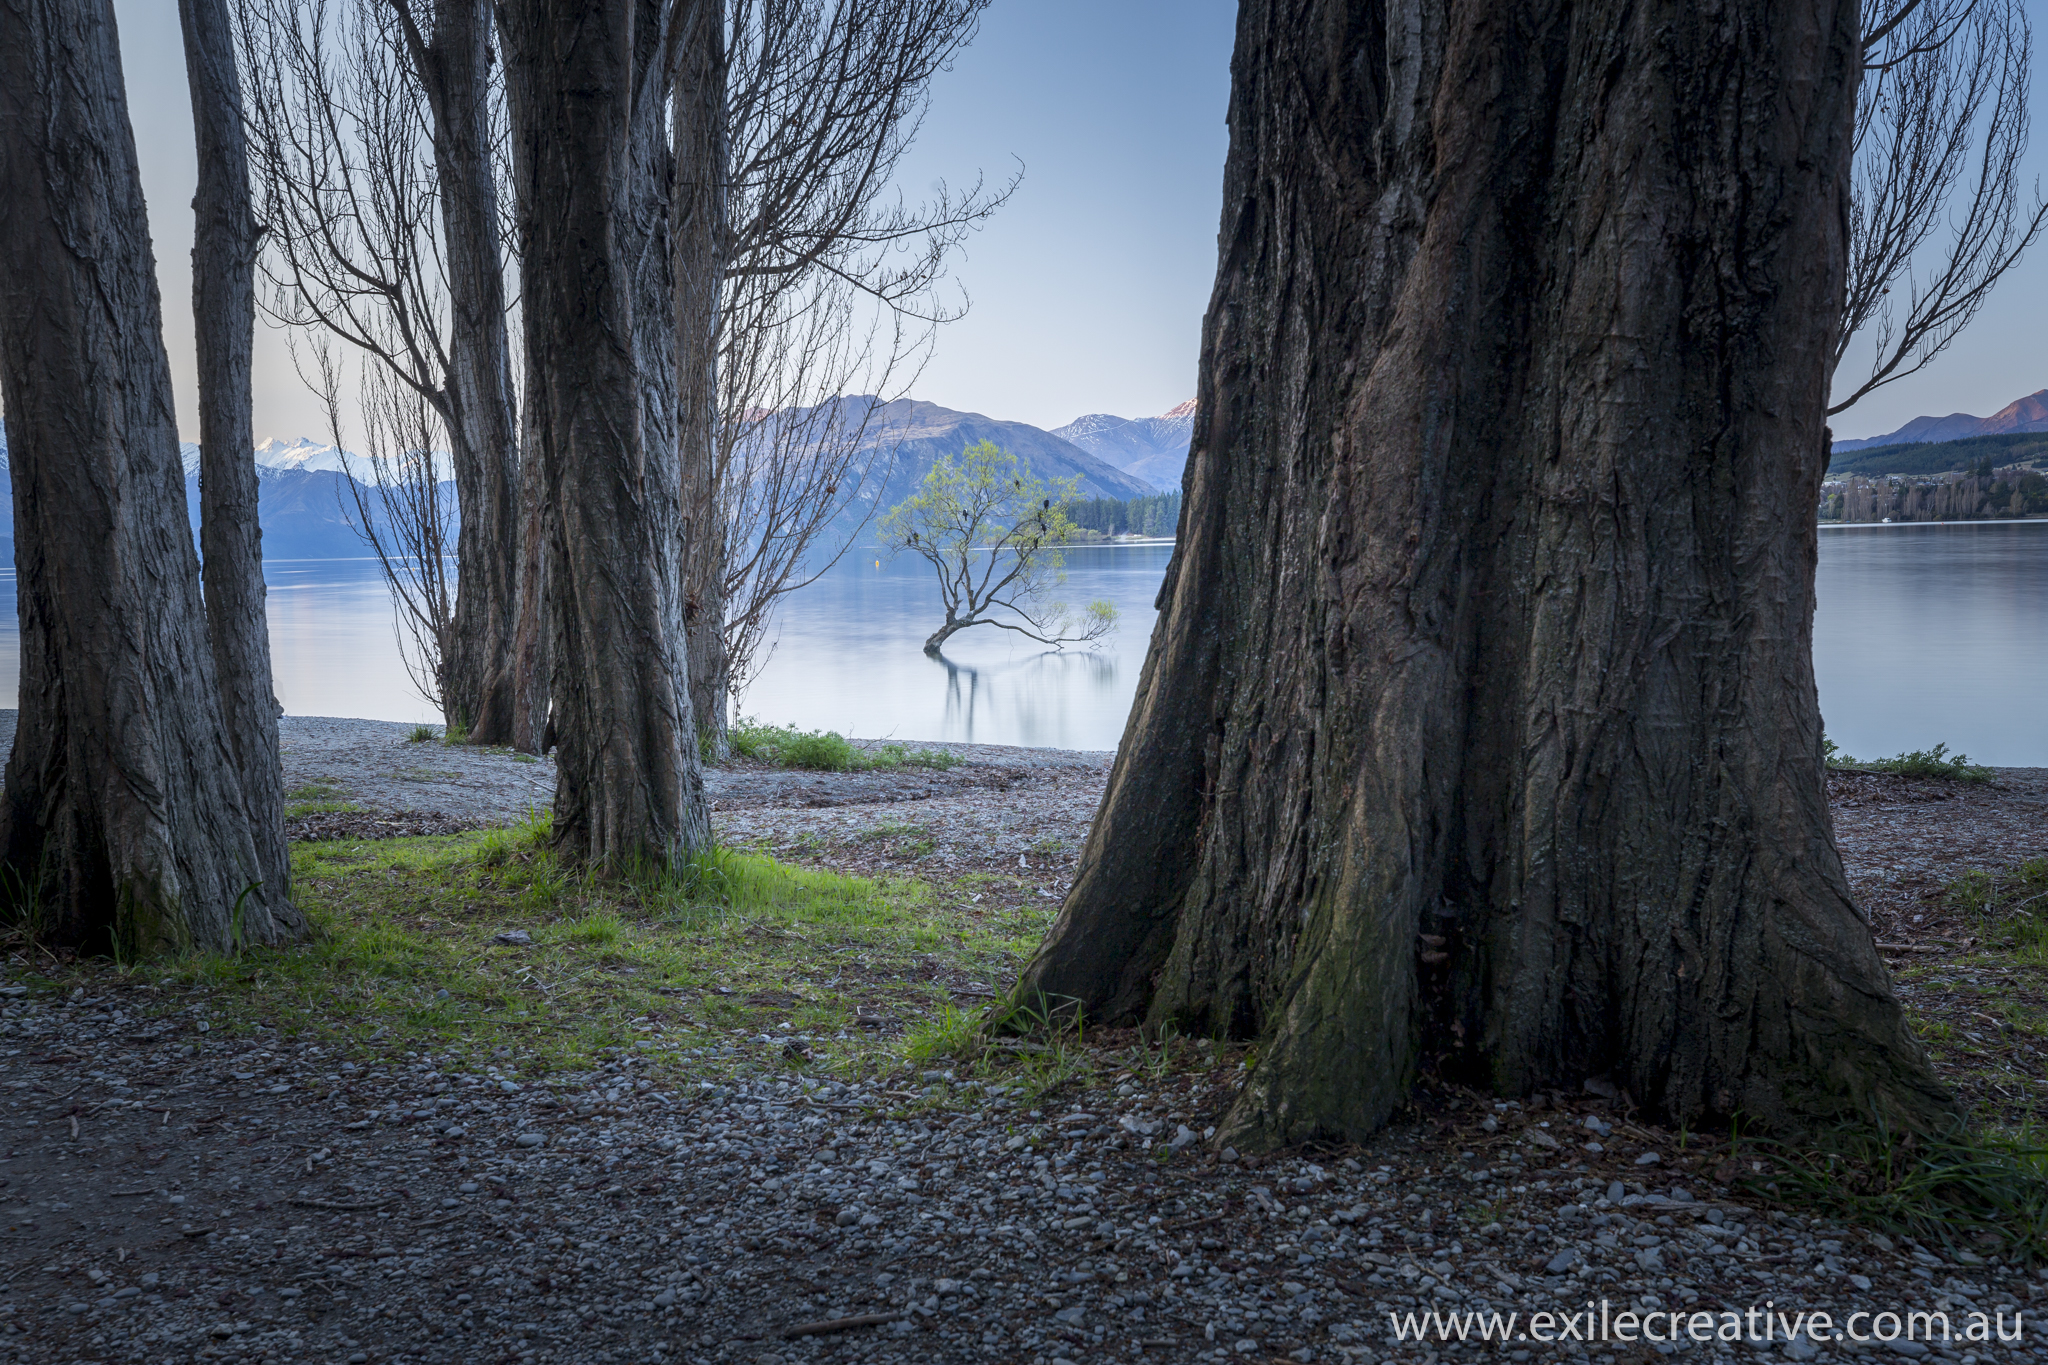 Back in Wanaka!  Canon 5Dmiii, 16-35L iii @ 32mm, ISO200, f/10, 1/15s with B+W CPL